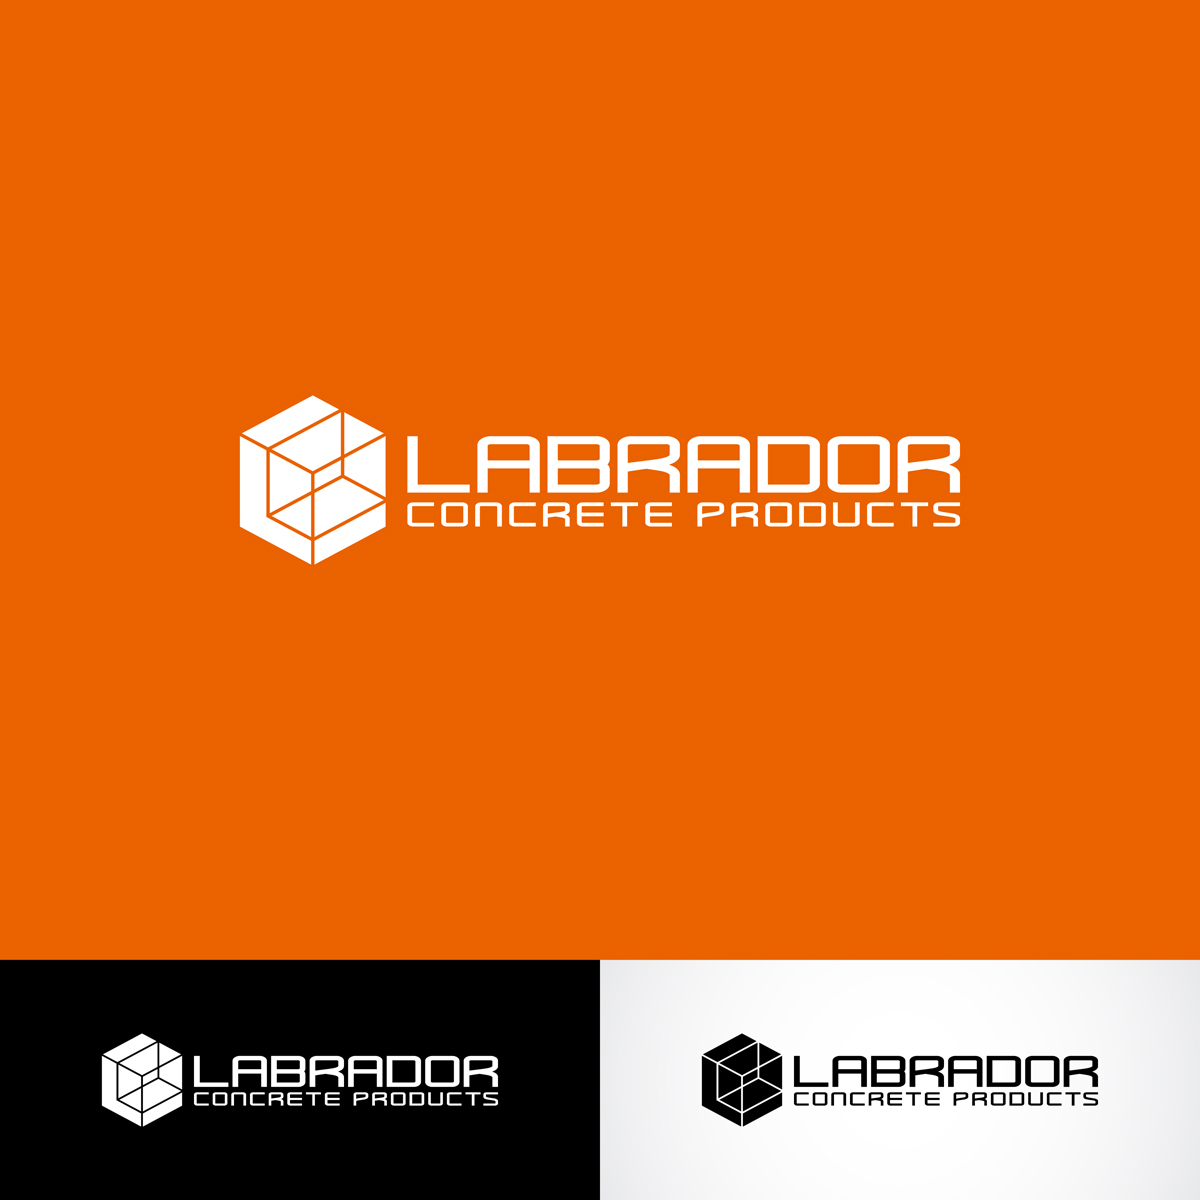 Logo Design by killer_meowmeow - Entry No. 127 in the Logo Design Contest Logo for Labrador Concrete Products.